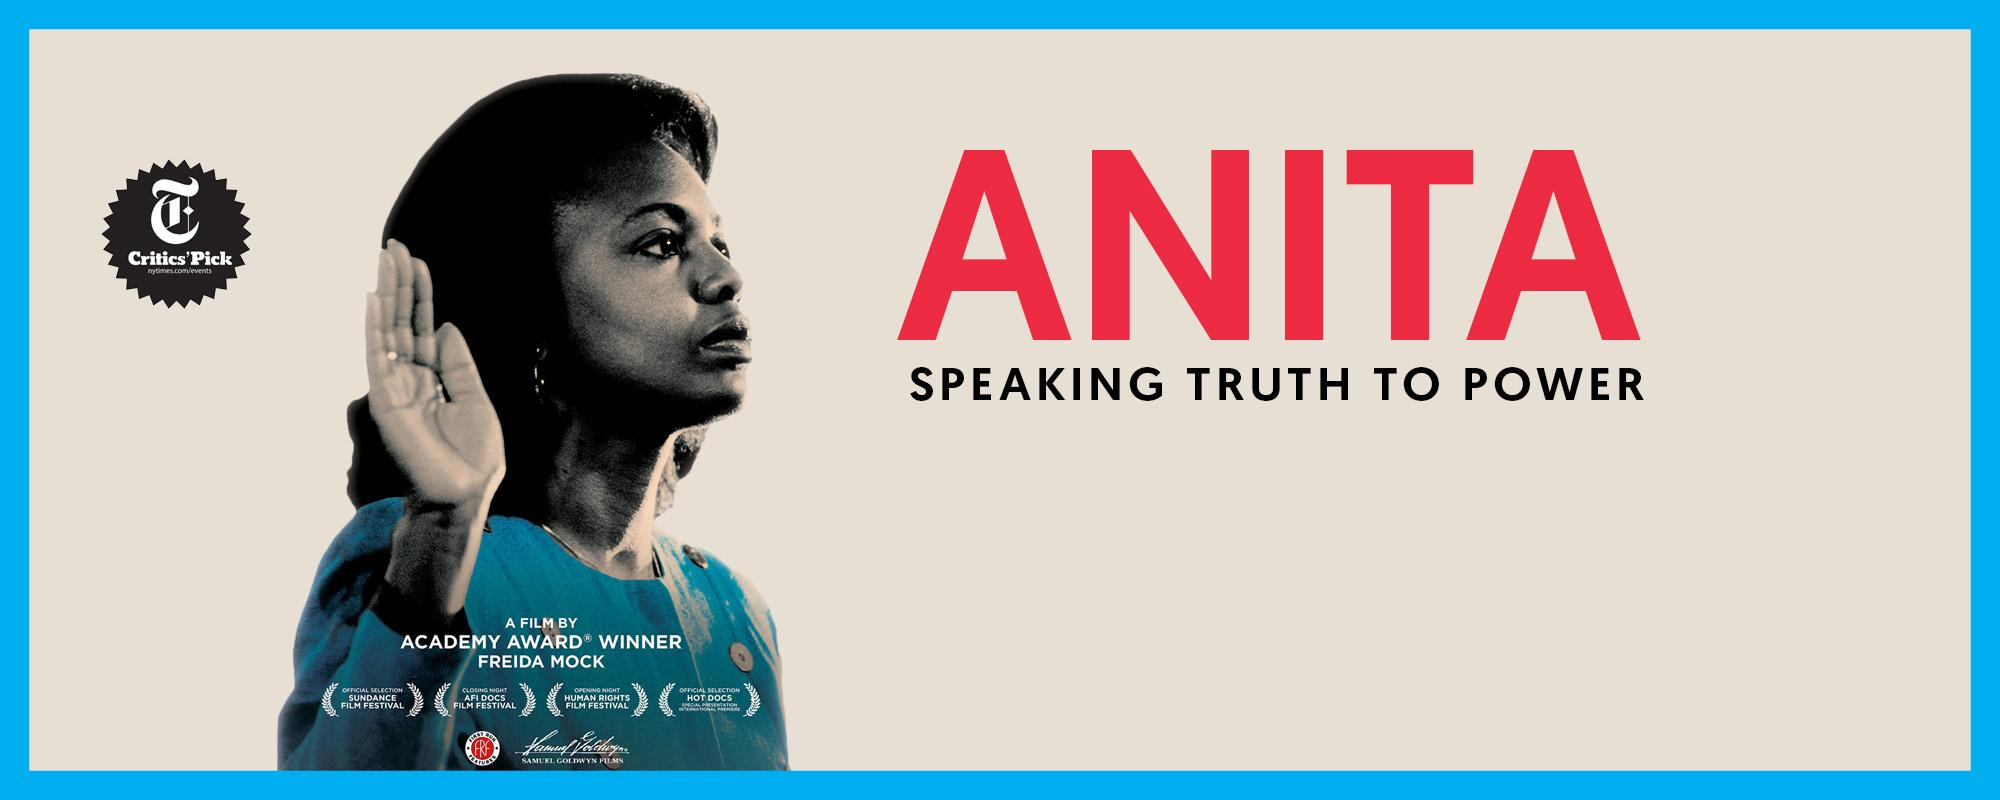 Anita Speaking Truth to Power